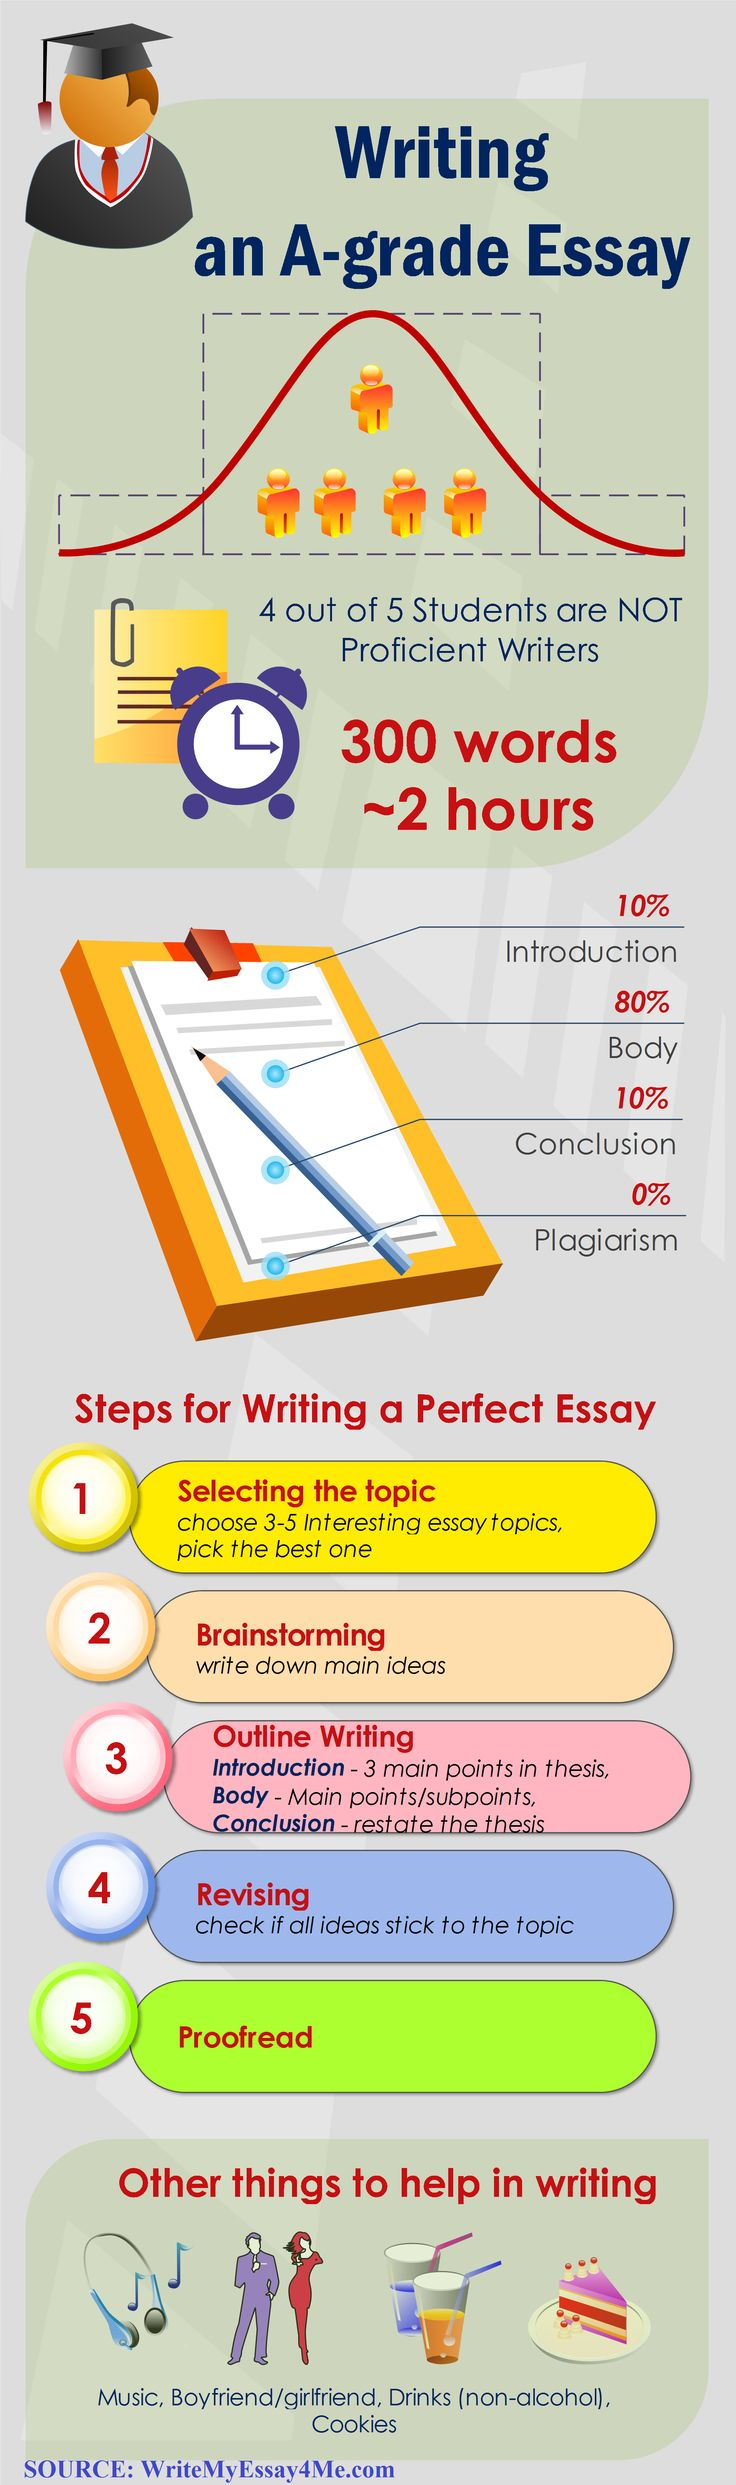 best ideas about essay writing tips essay tips it is of my opinion no offense that being in a r tic relationship anyone cannot be concomitant receiving high grades and making great essays